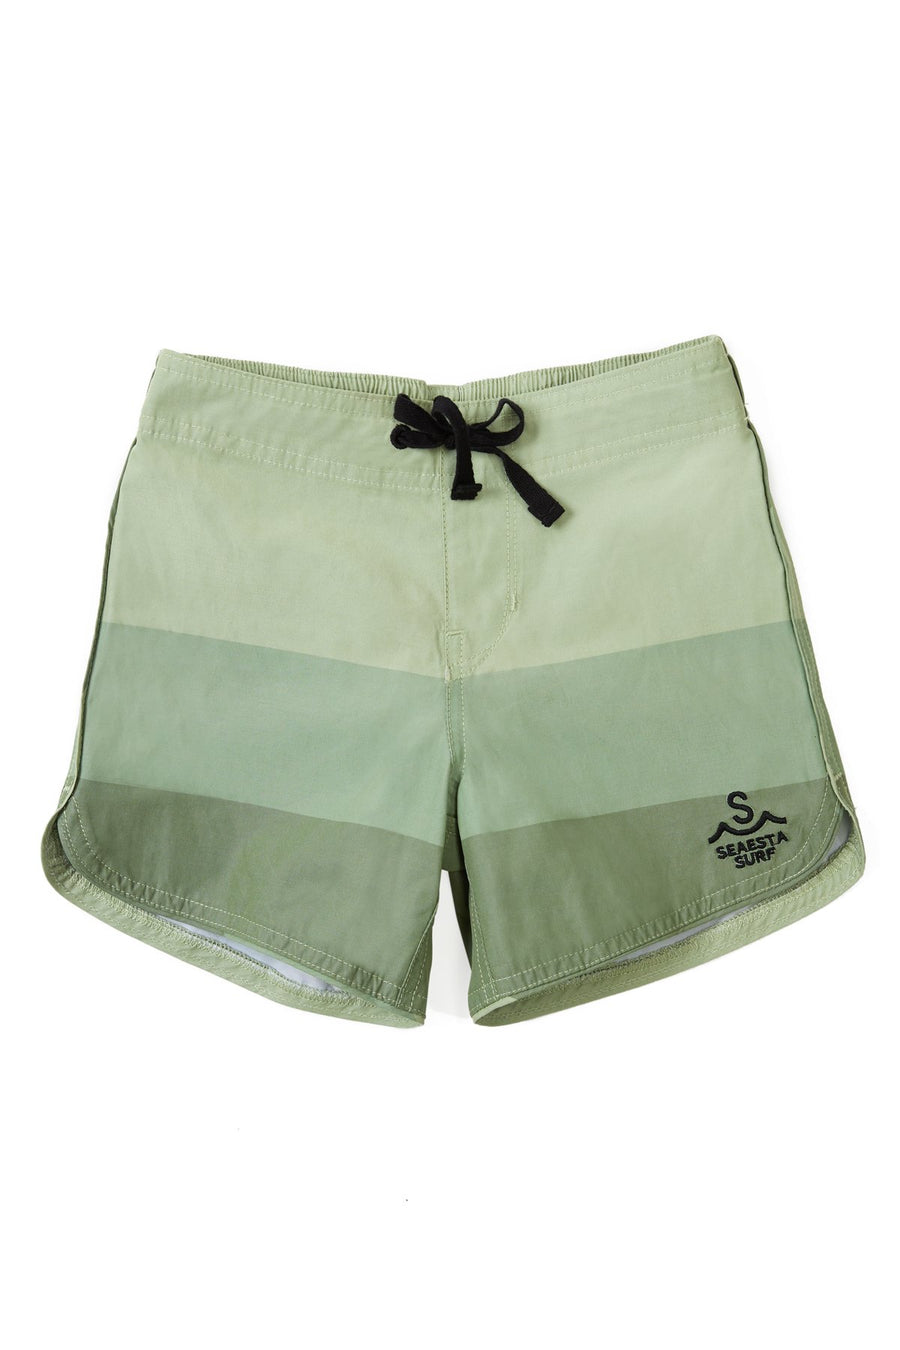 Triple Scoop / Pistachio Boardshorts